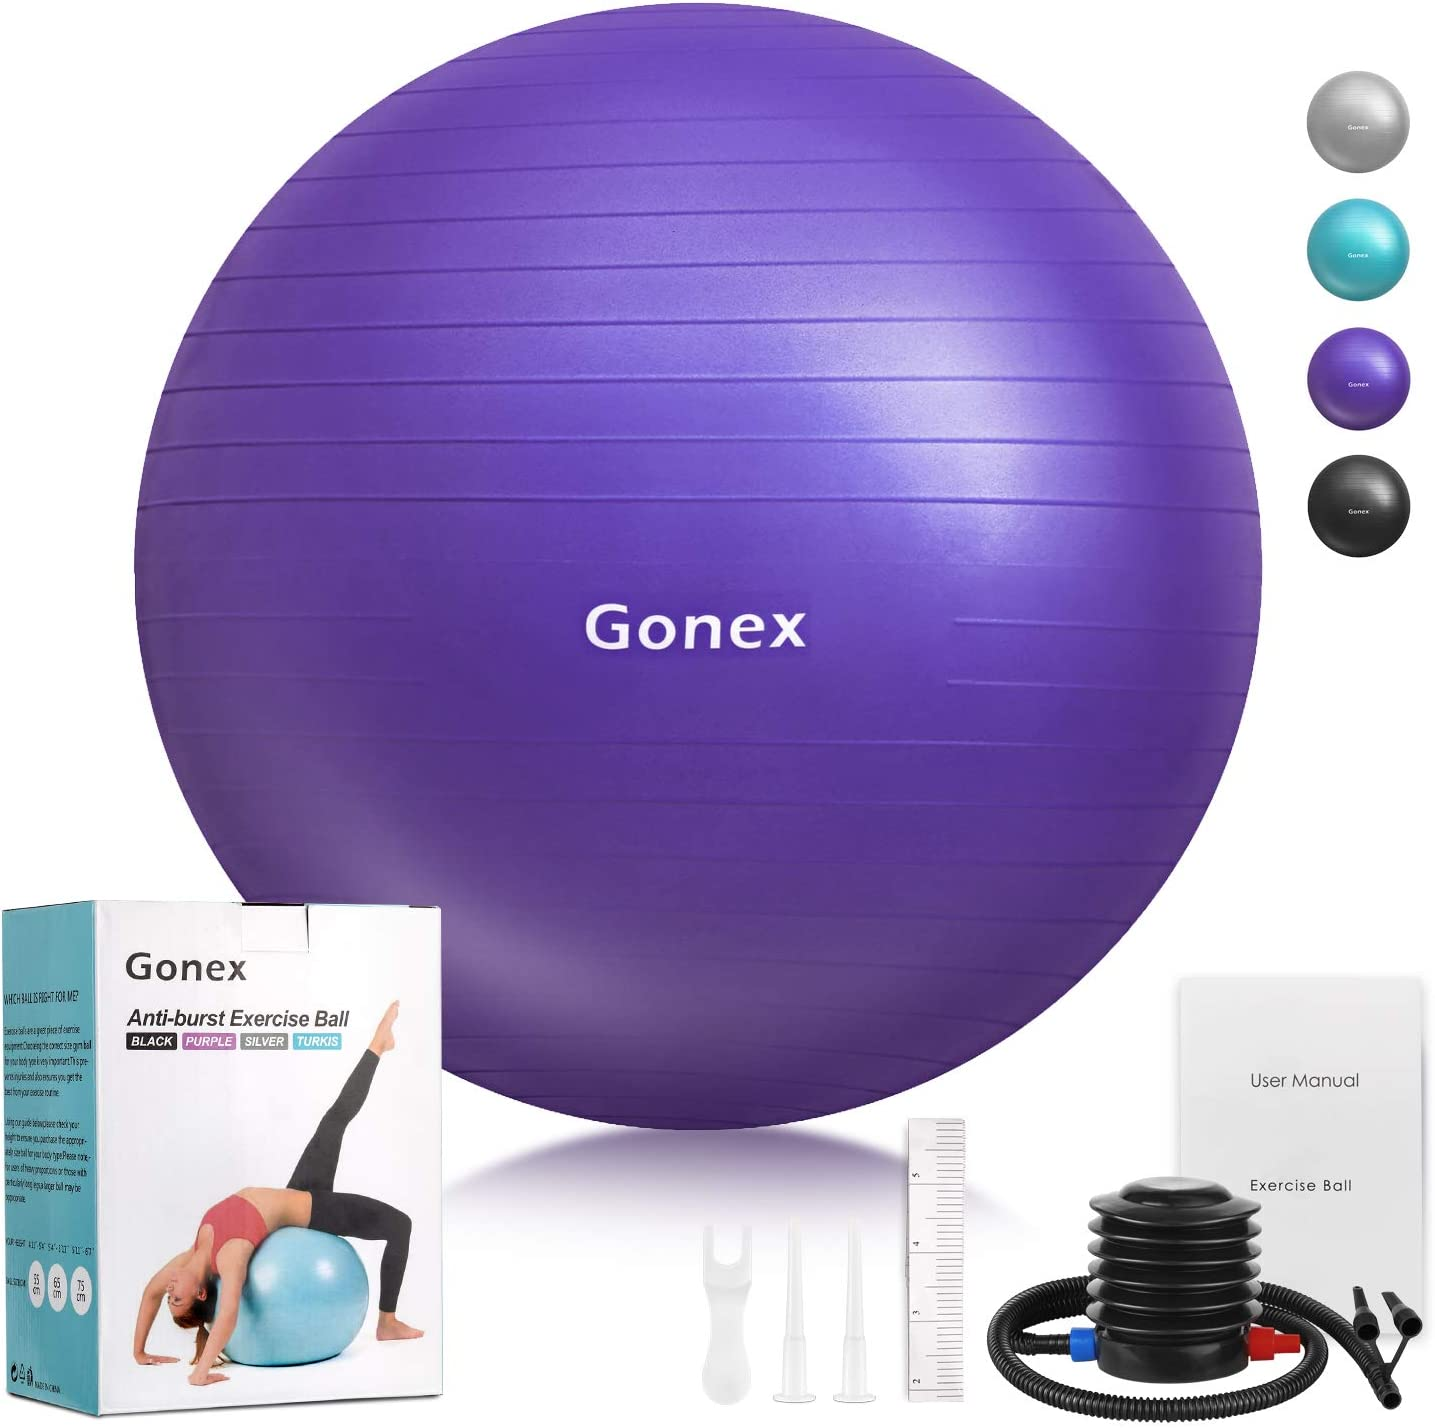 Gonex Fitness Exercise Ball 55cm 65cm 75cm Anti-Burst Non-Slip Stability Balance Ball Supports 2200lbs for Birthing Yoga Pilates Desk Chairs Therapy With Quick Pump